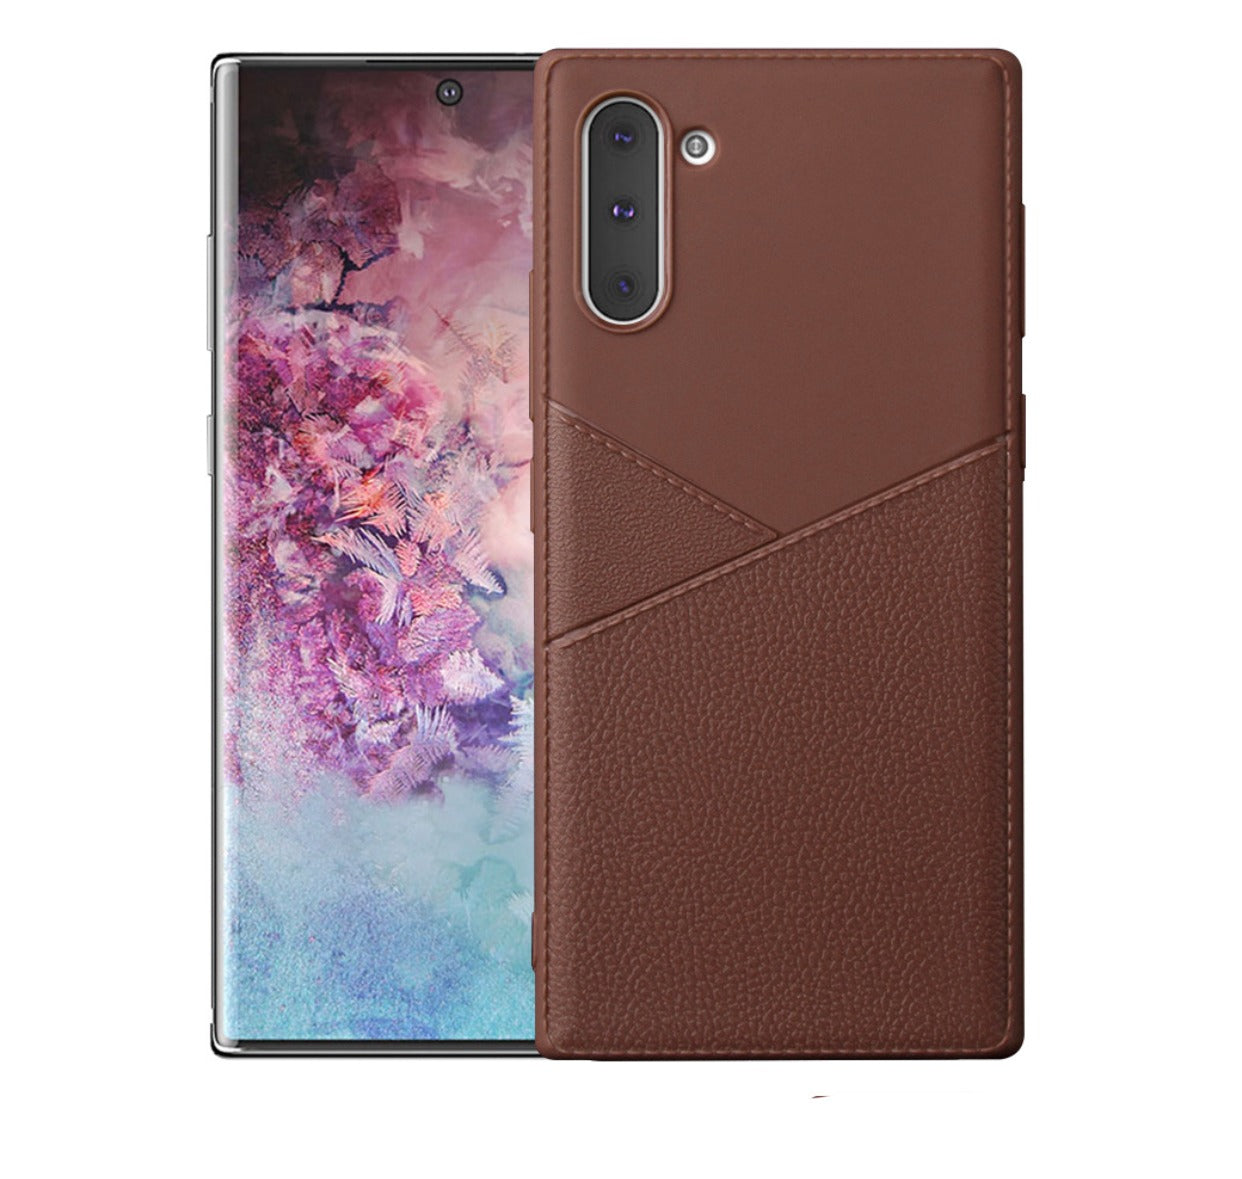 Platinum Design Leather Case Super Thin for Samsung Galaxy Note 10 Plus